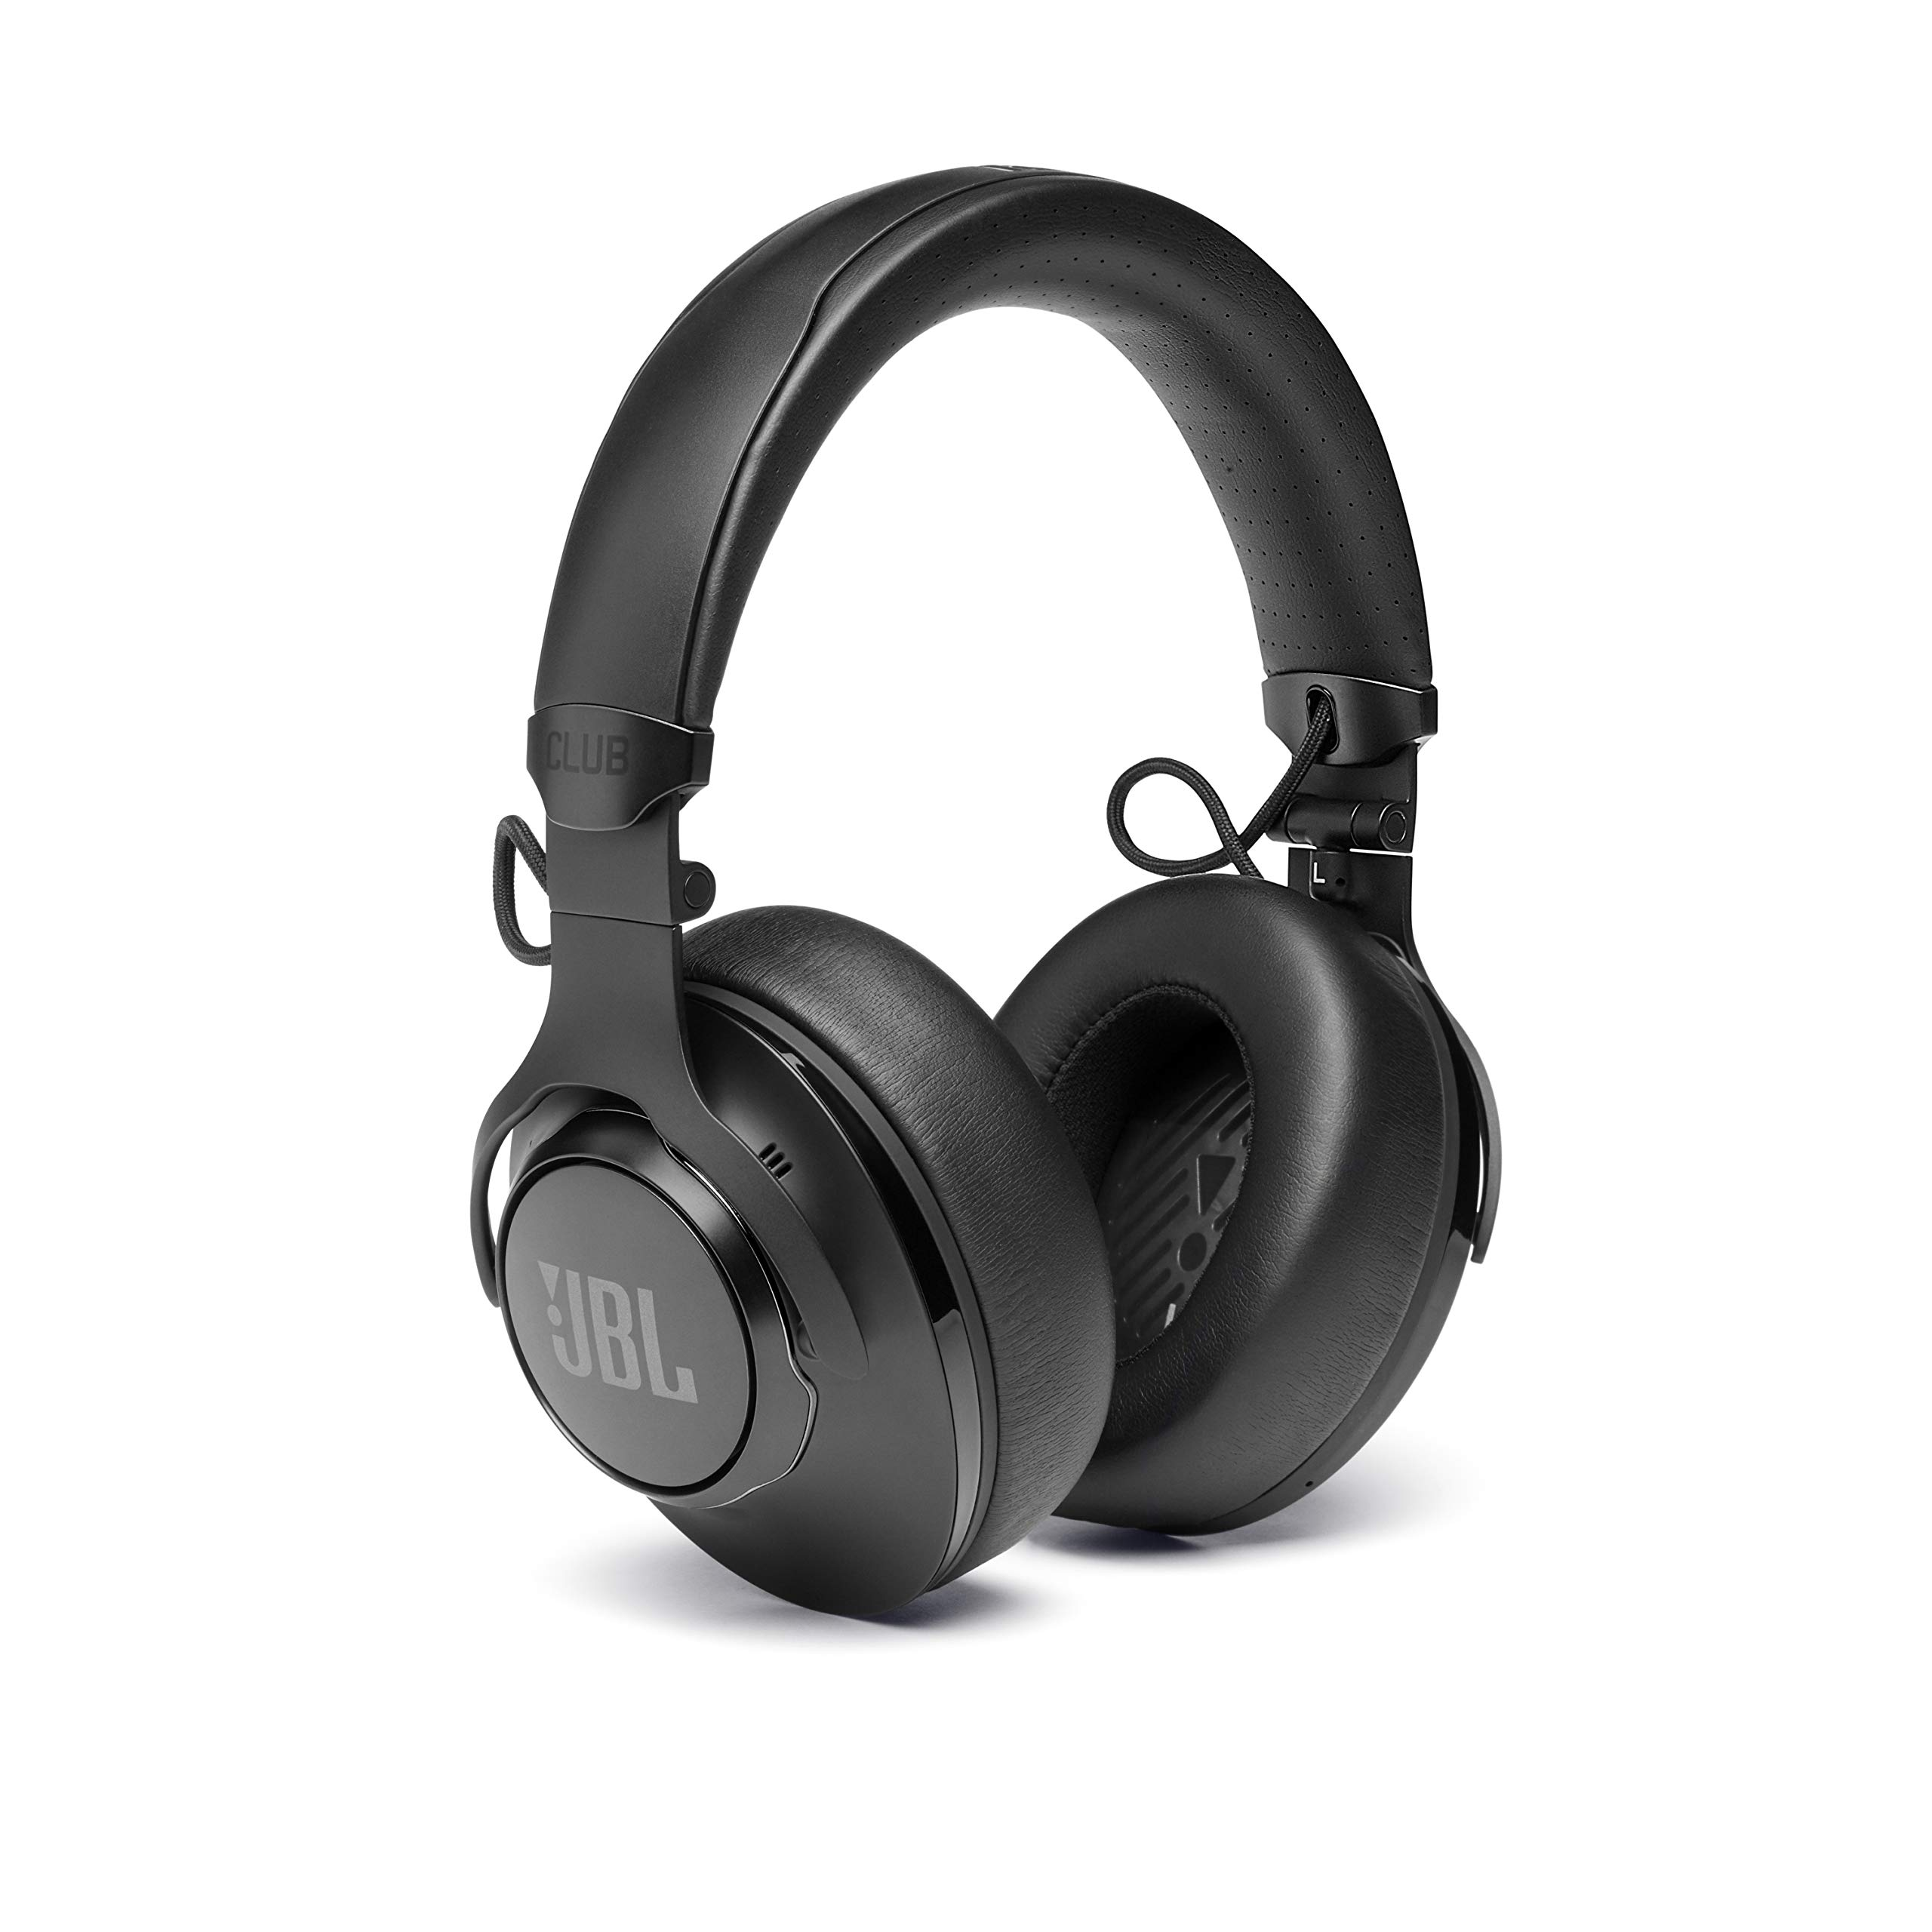 Amazon Com Jbl Club 950nc Wireless Over Ear Noise Cancelling Bluetooth Headphones With Amazon Alexa Voice Control Up To 55 Hours Battery Works With Android And Apple Ios Black Electronics